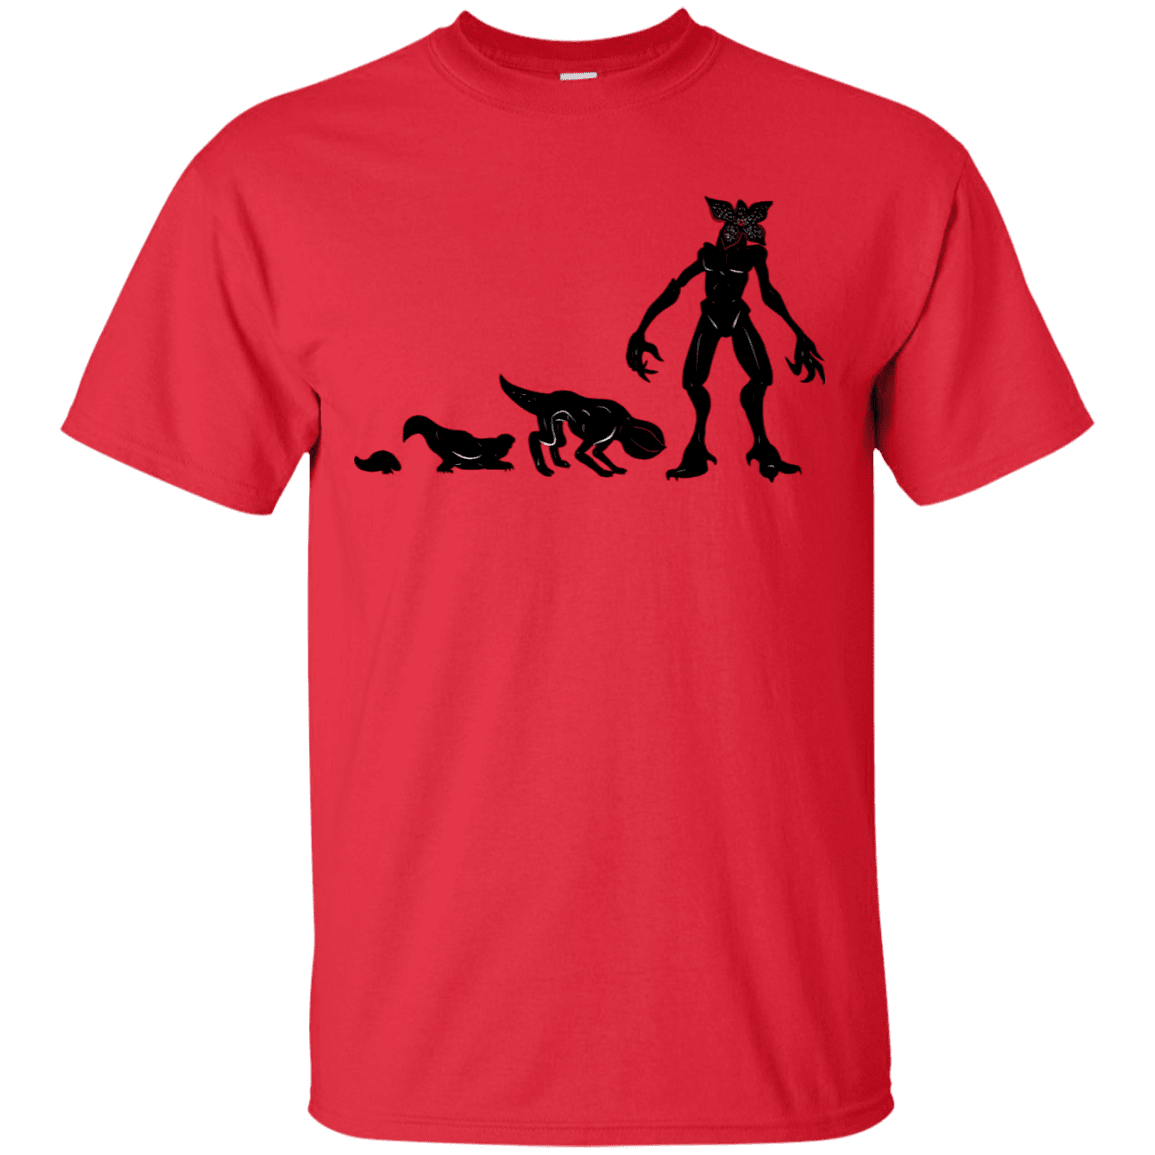 T-Shirts Red / S Demogorgon Evolution T-Shirt